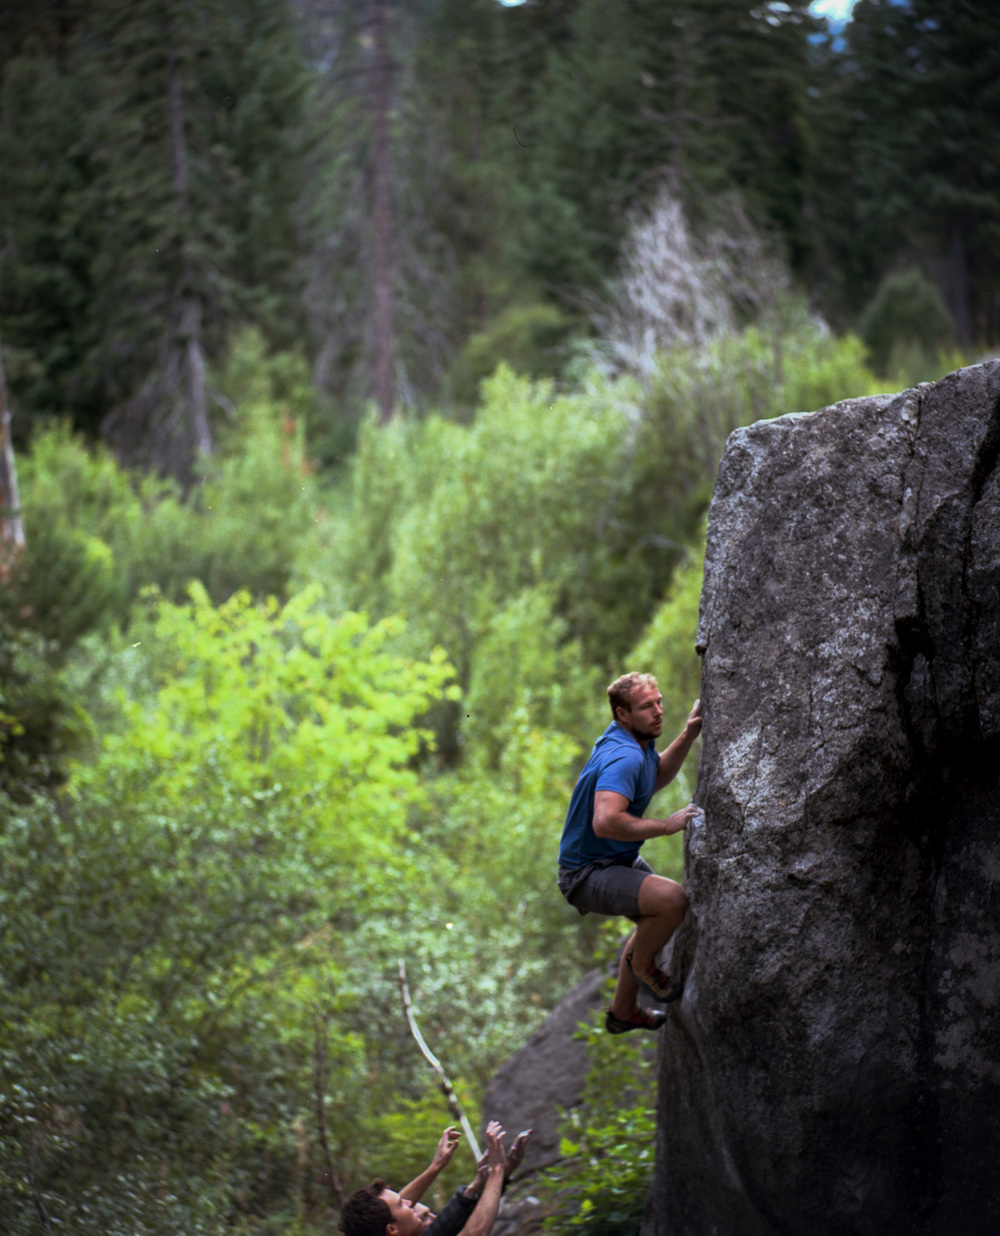 Kevin nearing the topout of Sunshine Daydream, V4 at the Egg Rock boulders, Leavenworth, WA